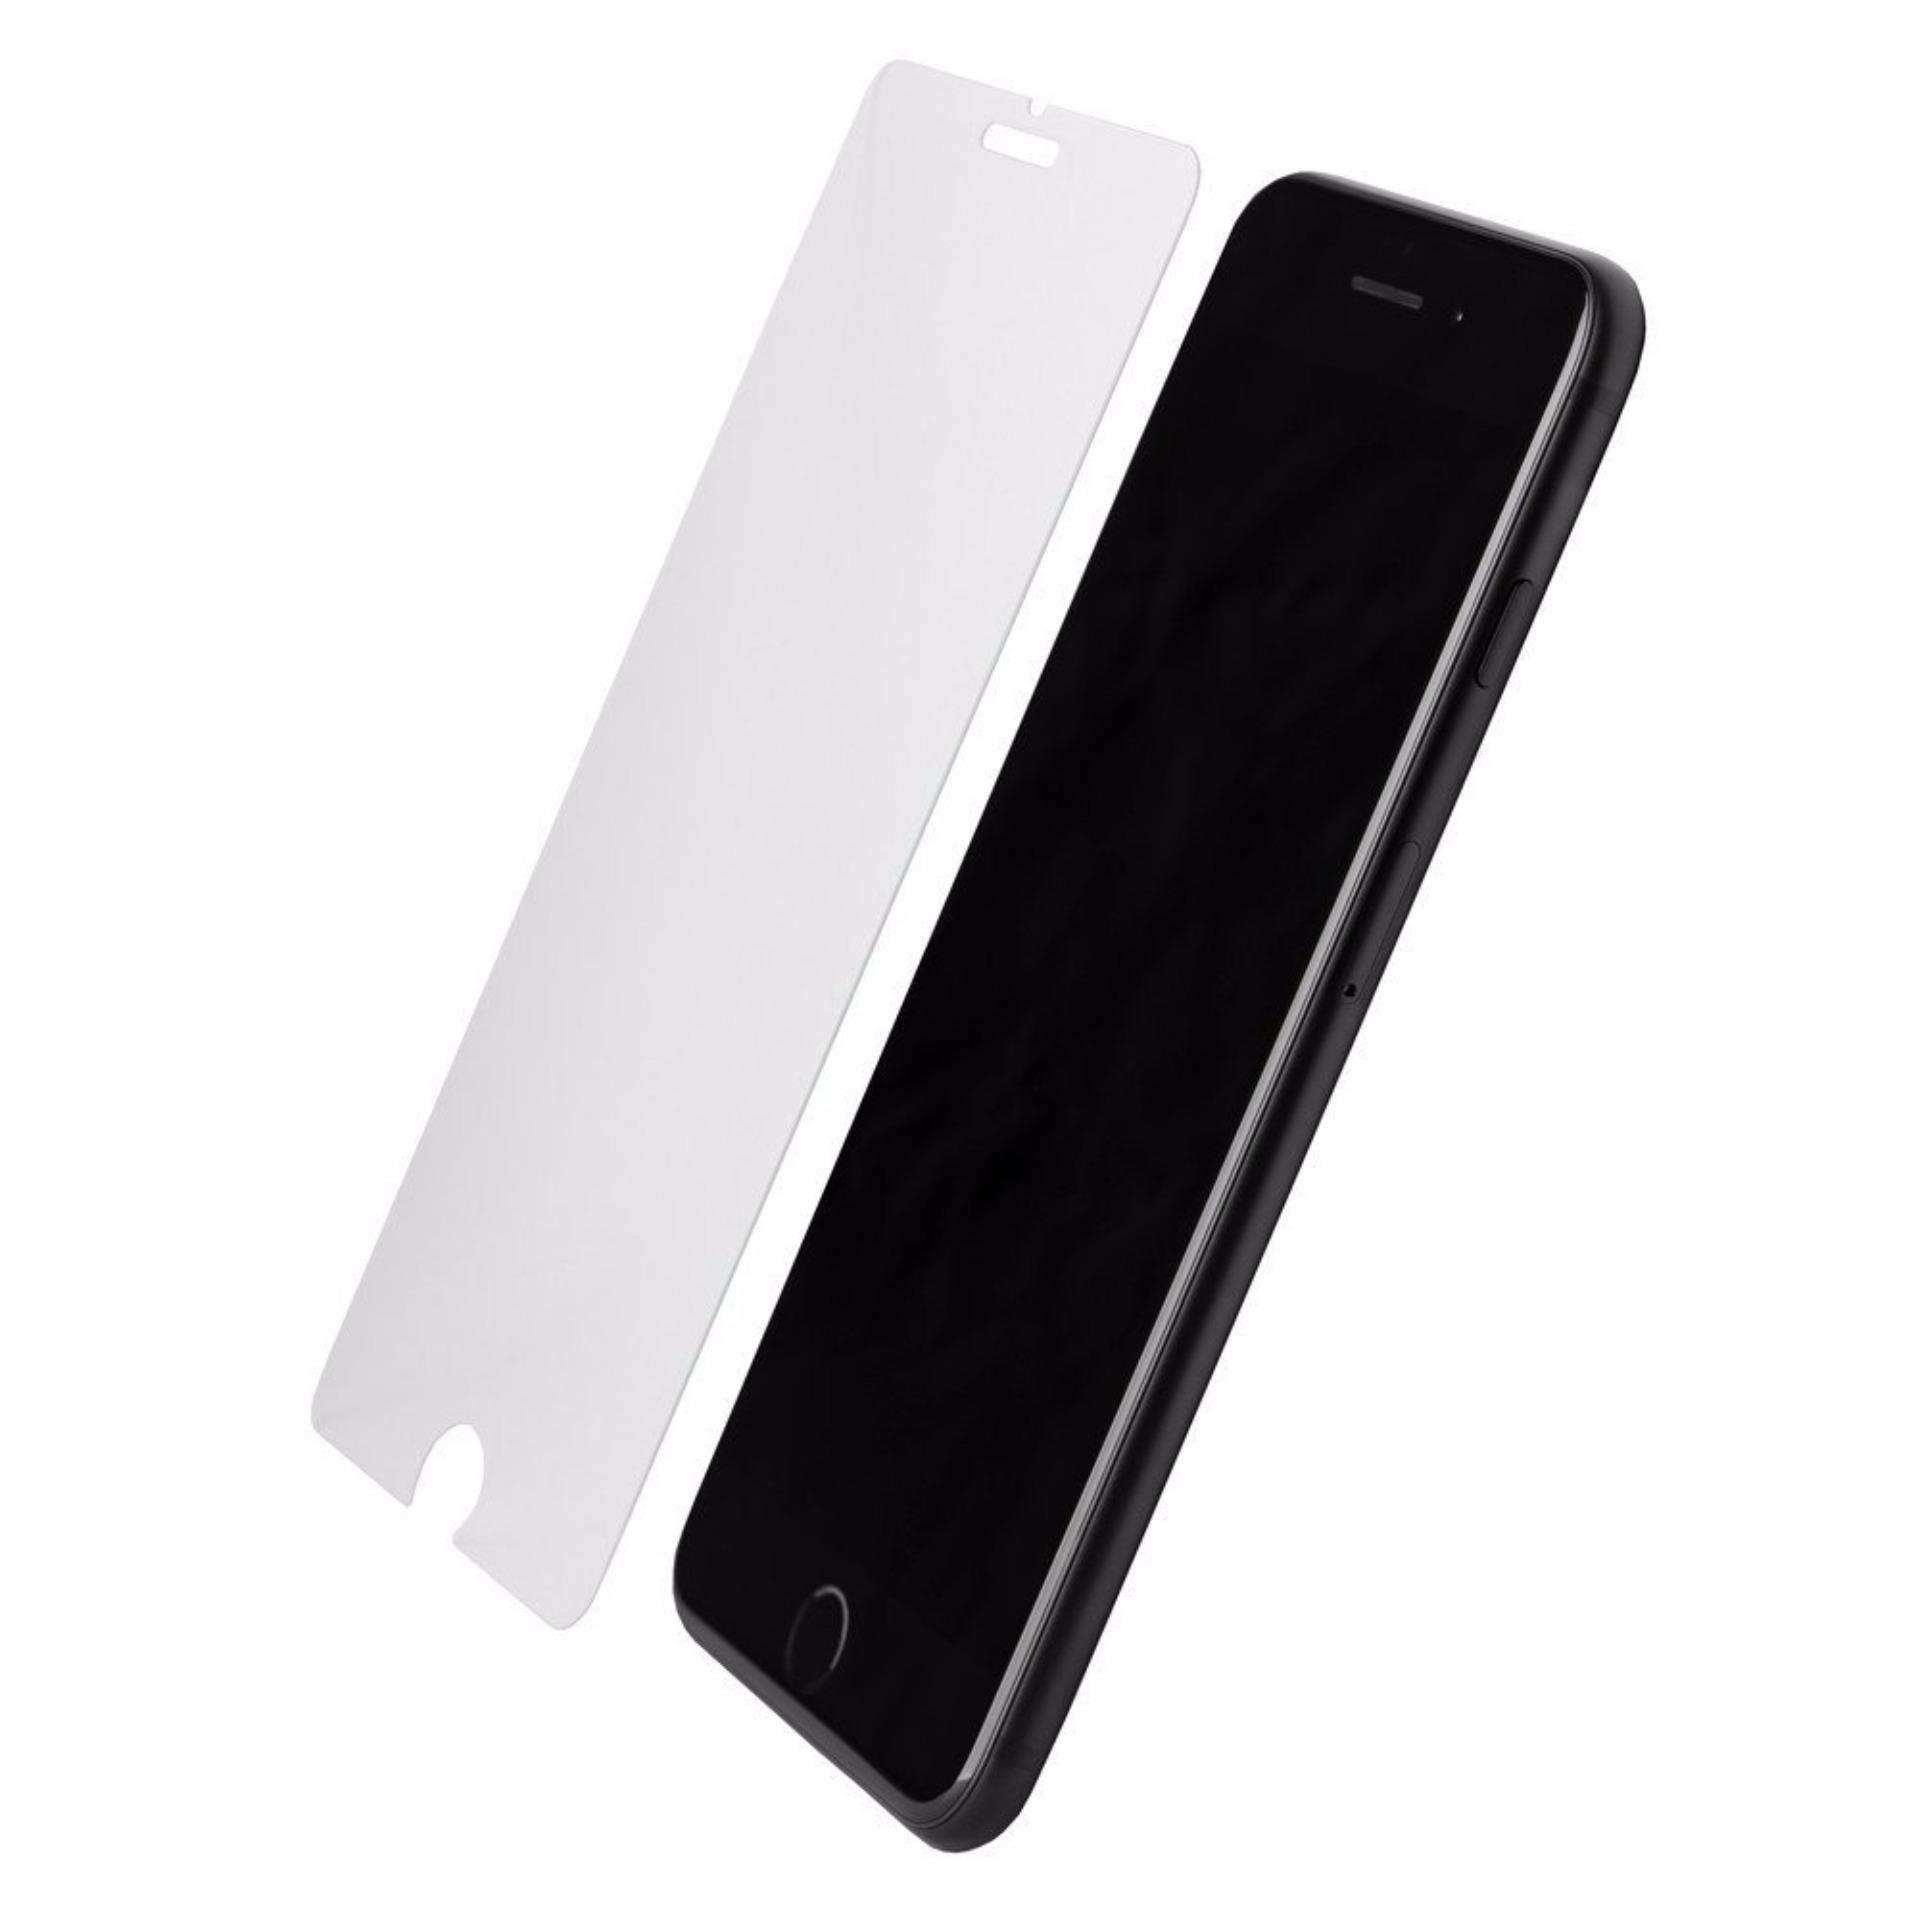 ANTIGORES SCREENGUARD TRANSPARAN. Harga Saya Promo Murah Tempered Glass Meizu M3 Note .